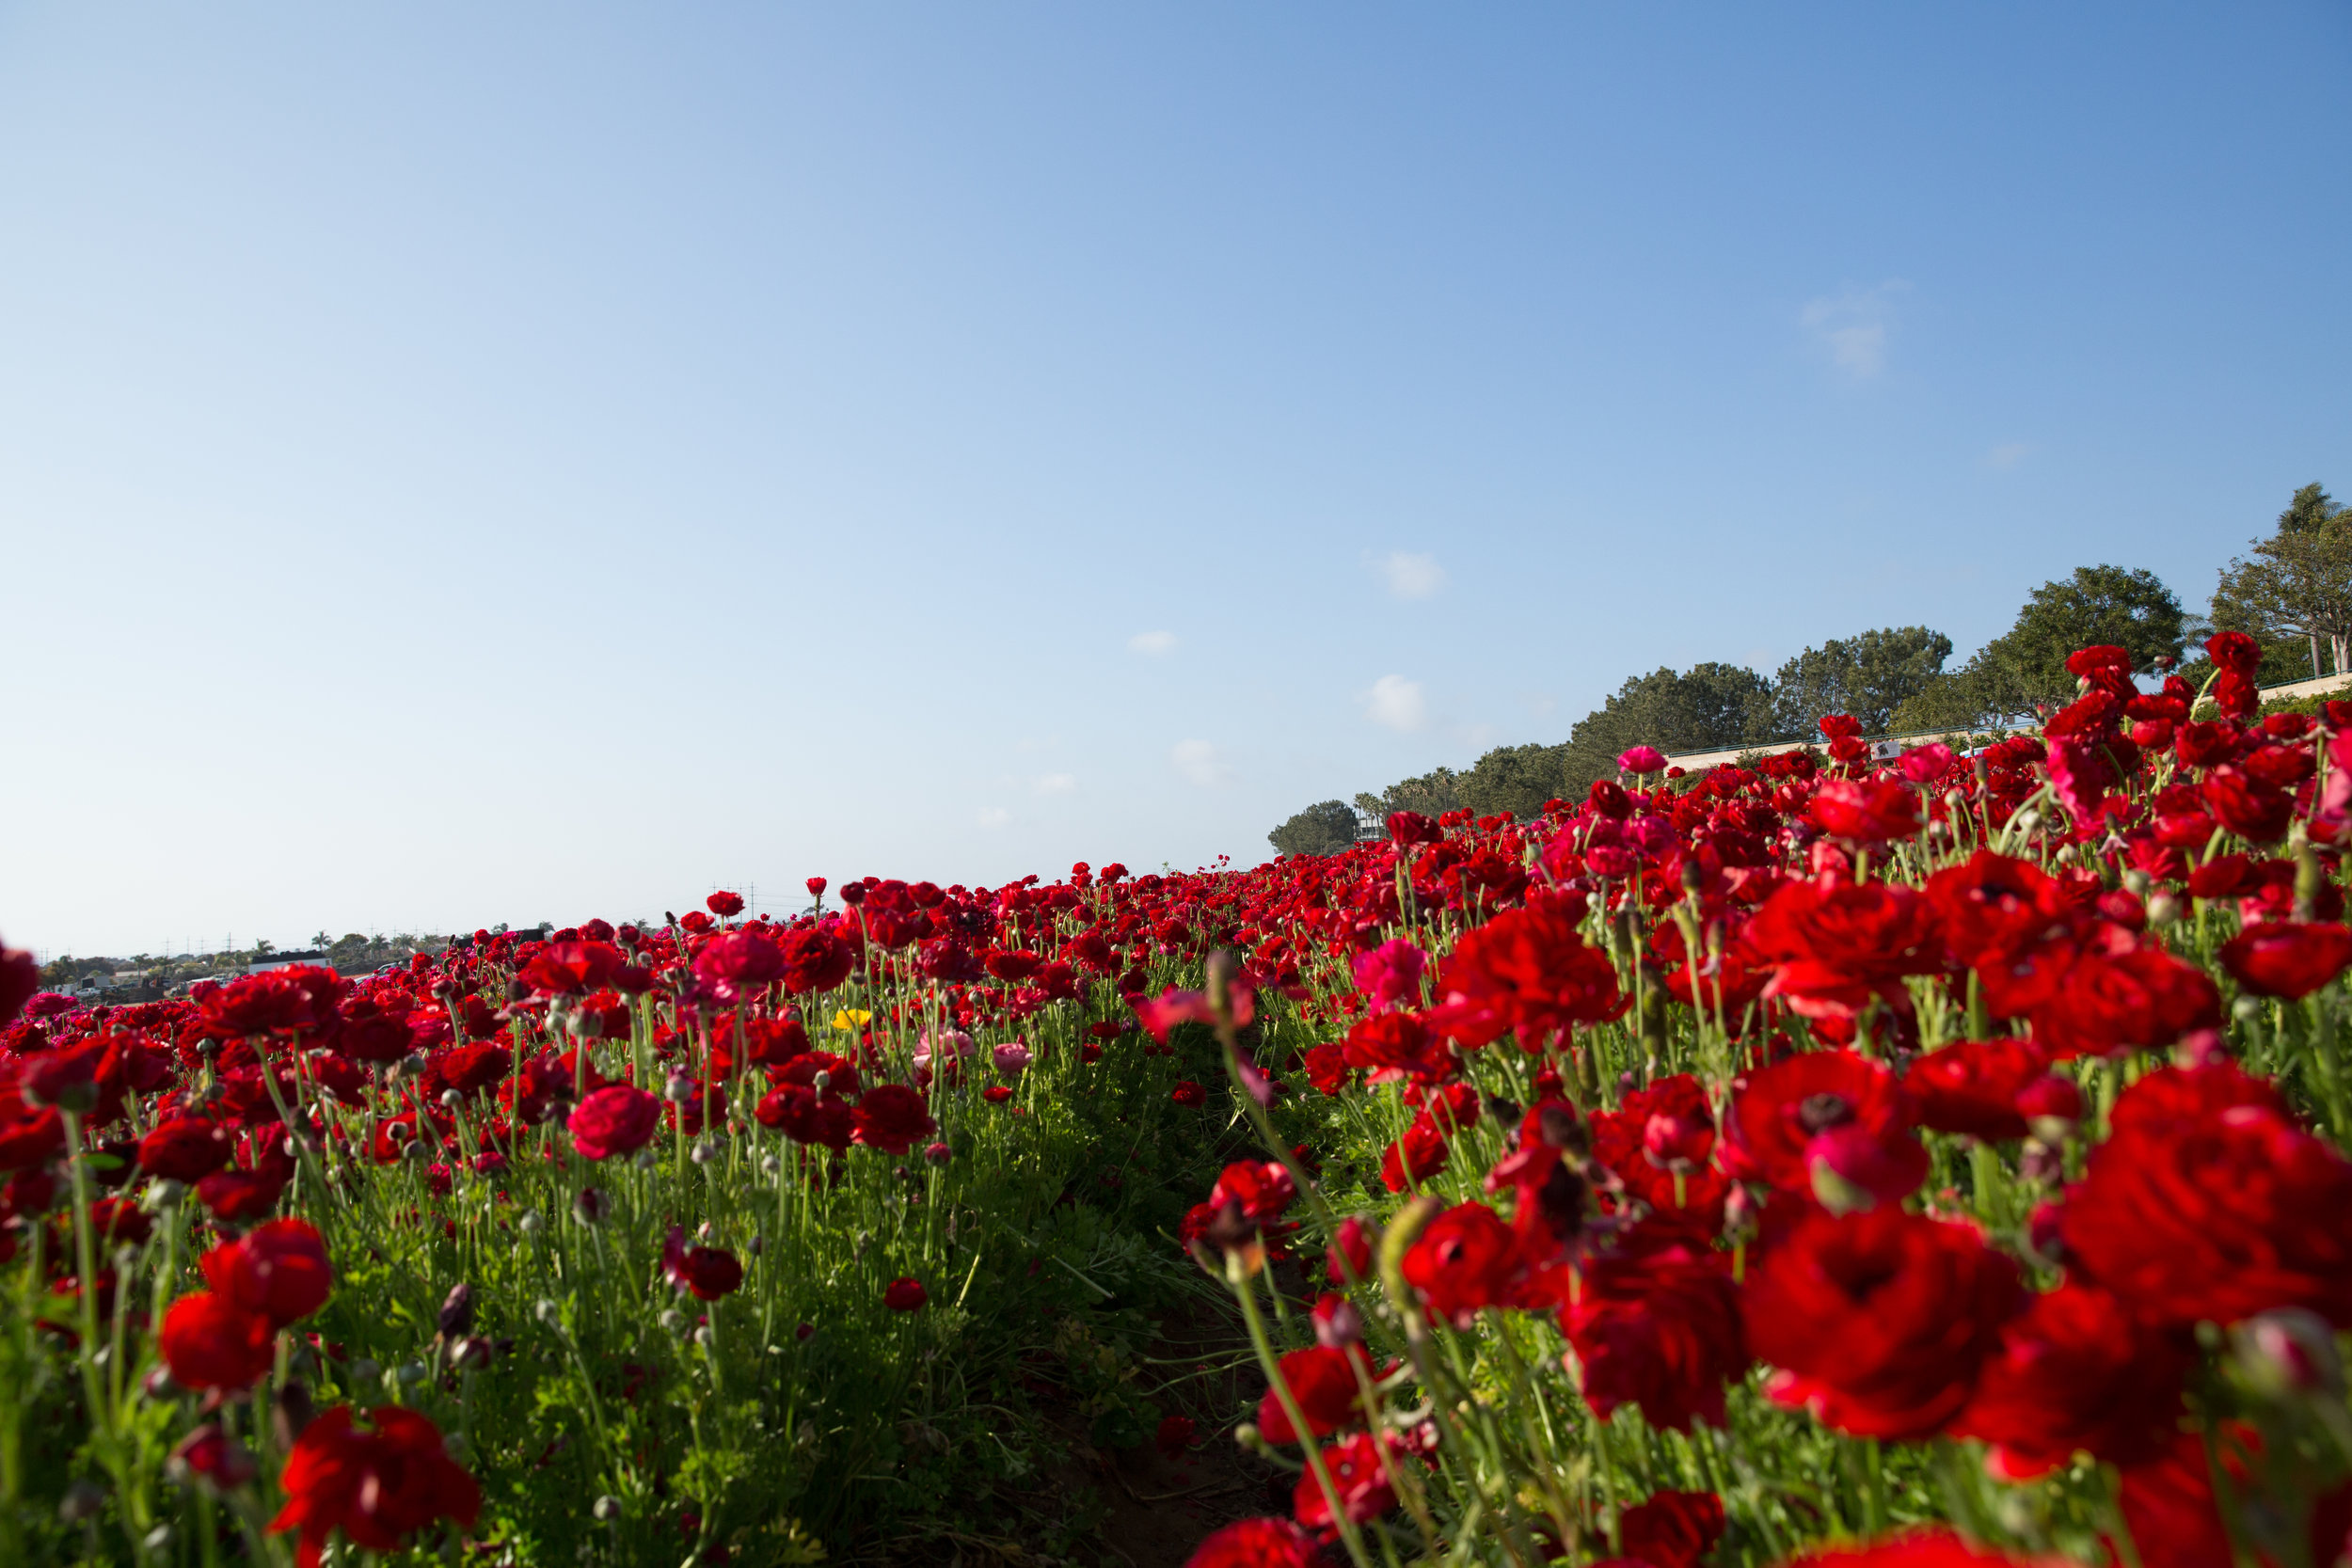 FLOWER_FIELDS-61.jpg